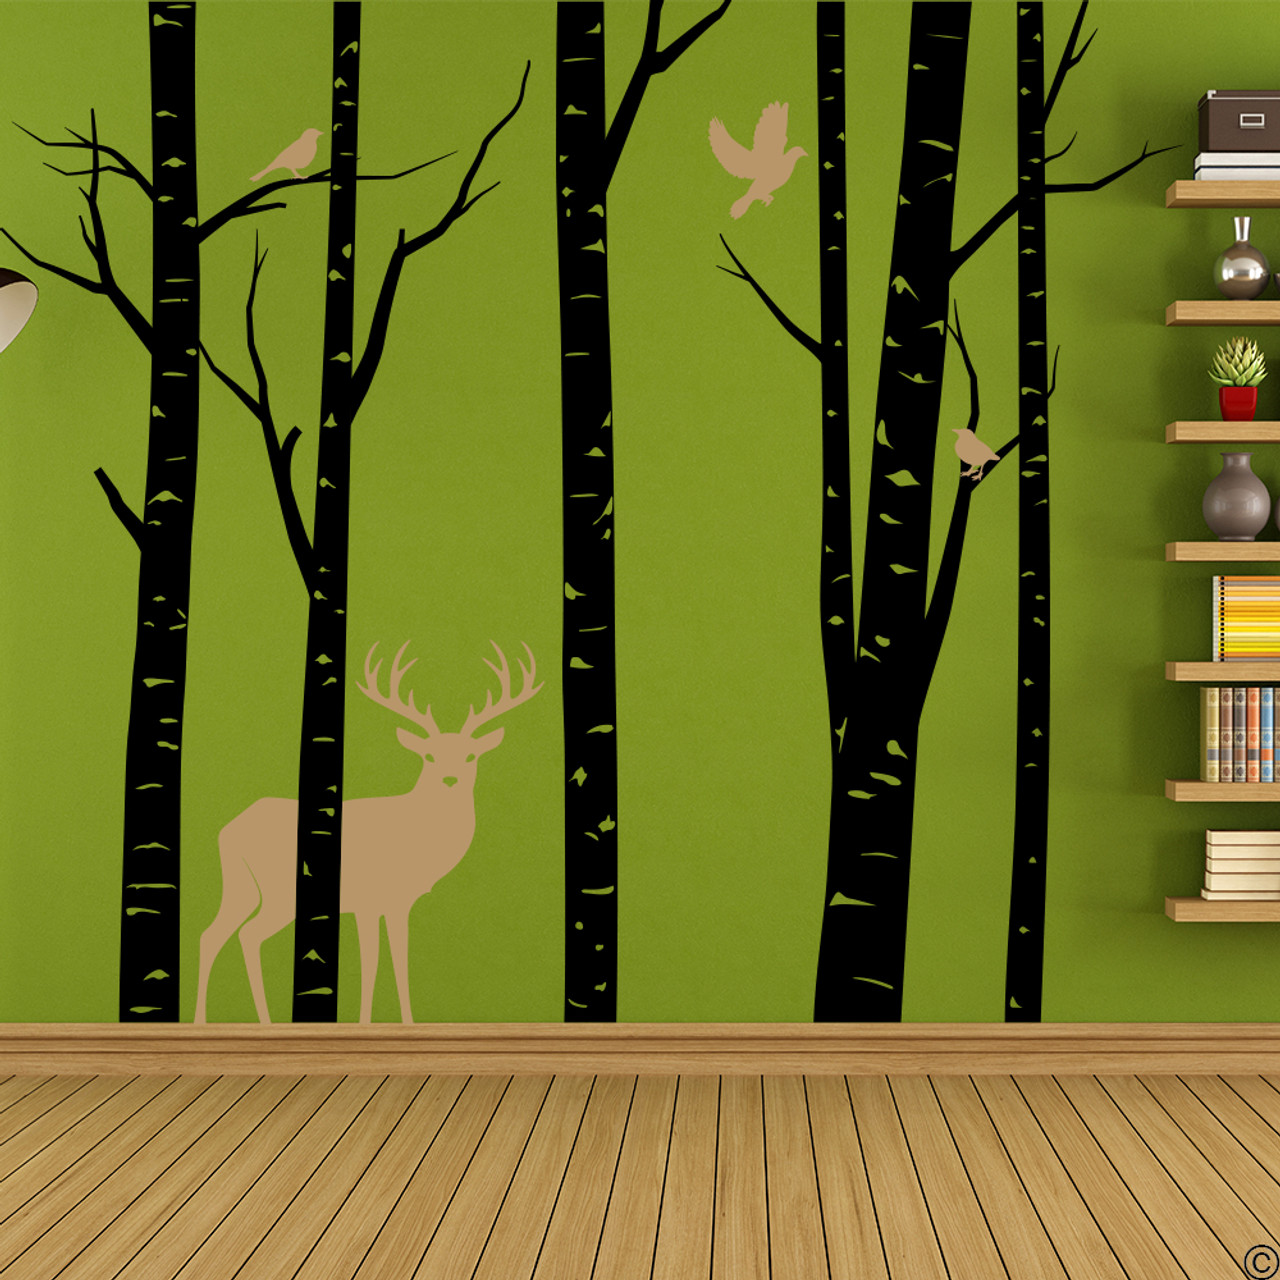 Aspen Trees mural with deer and birds vinyl wall decal in black and light brown